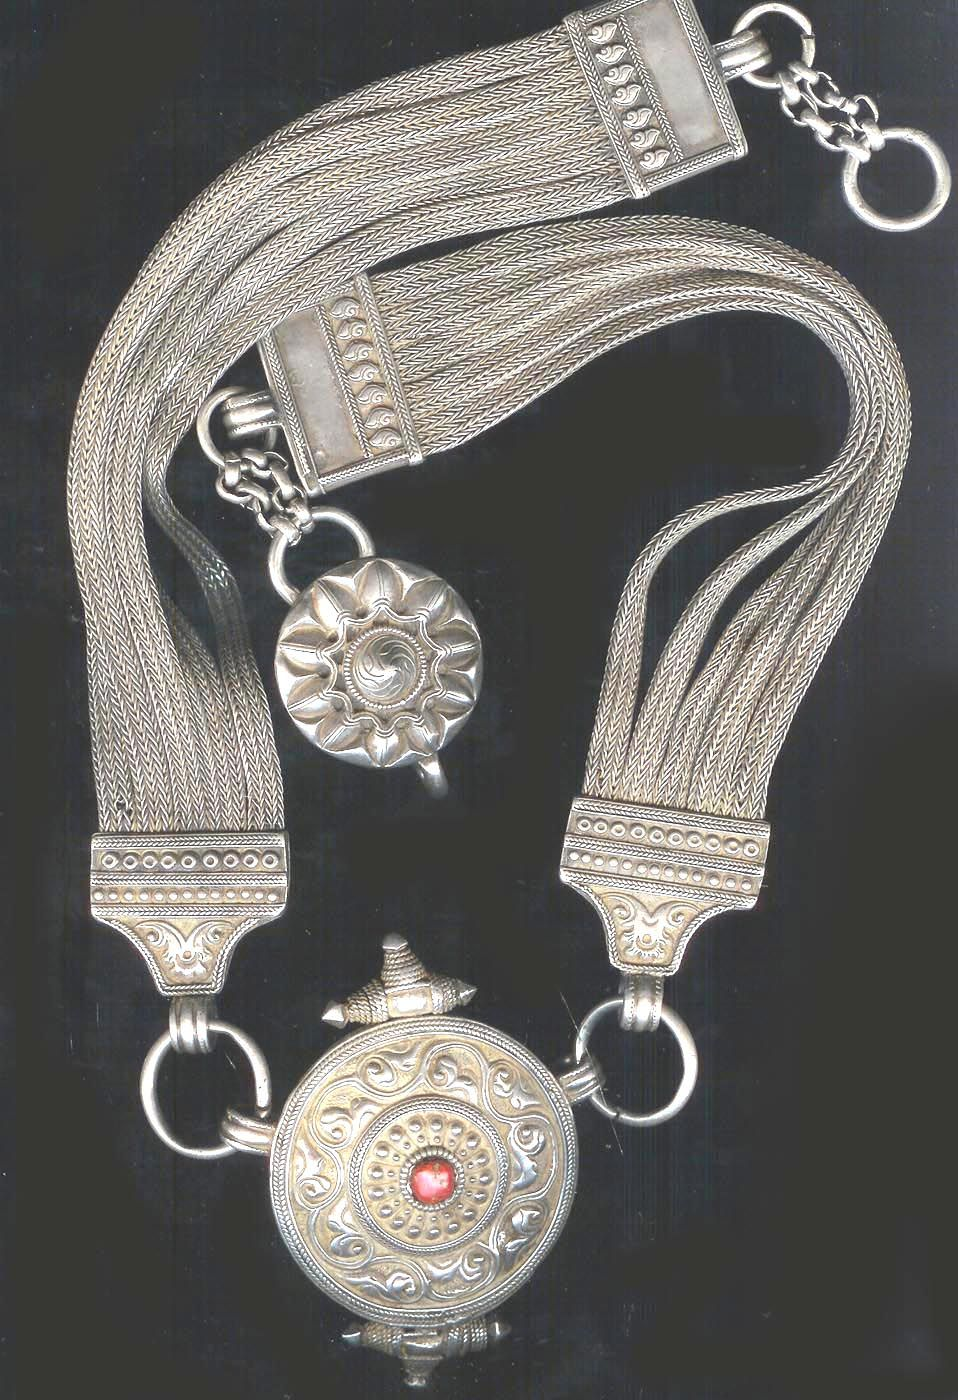 Antiquities New Fashion Gorgeous Antique Silver Filigree Ornament For Necklace 19-20th Century Excellent Goods Of Every Description Are Available Antiques